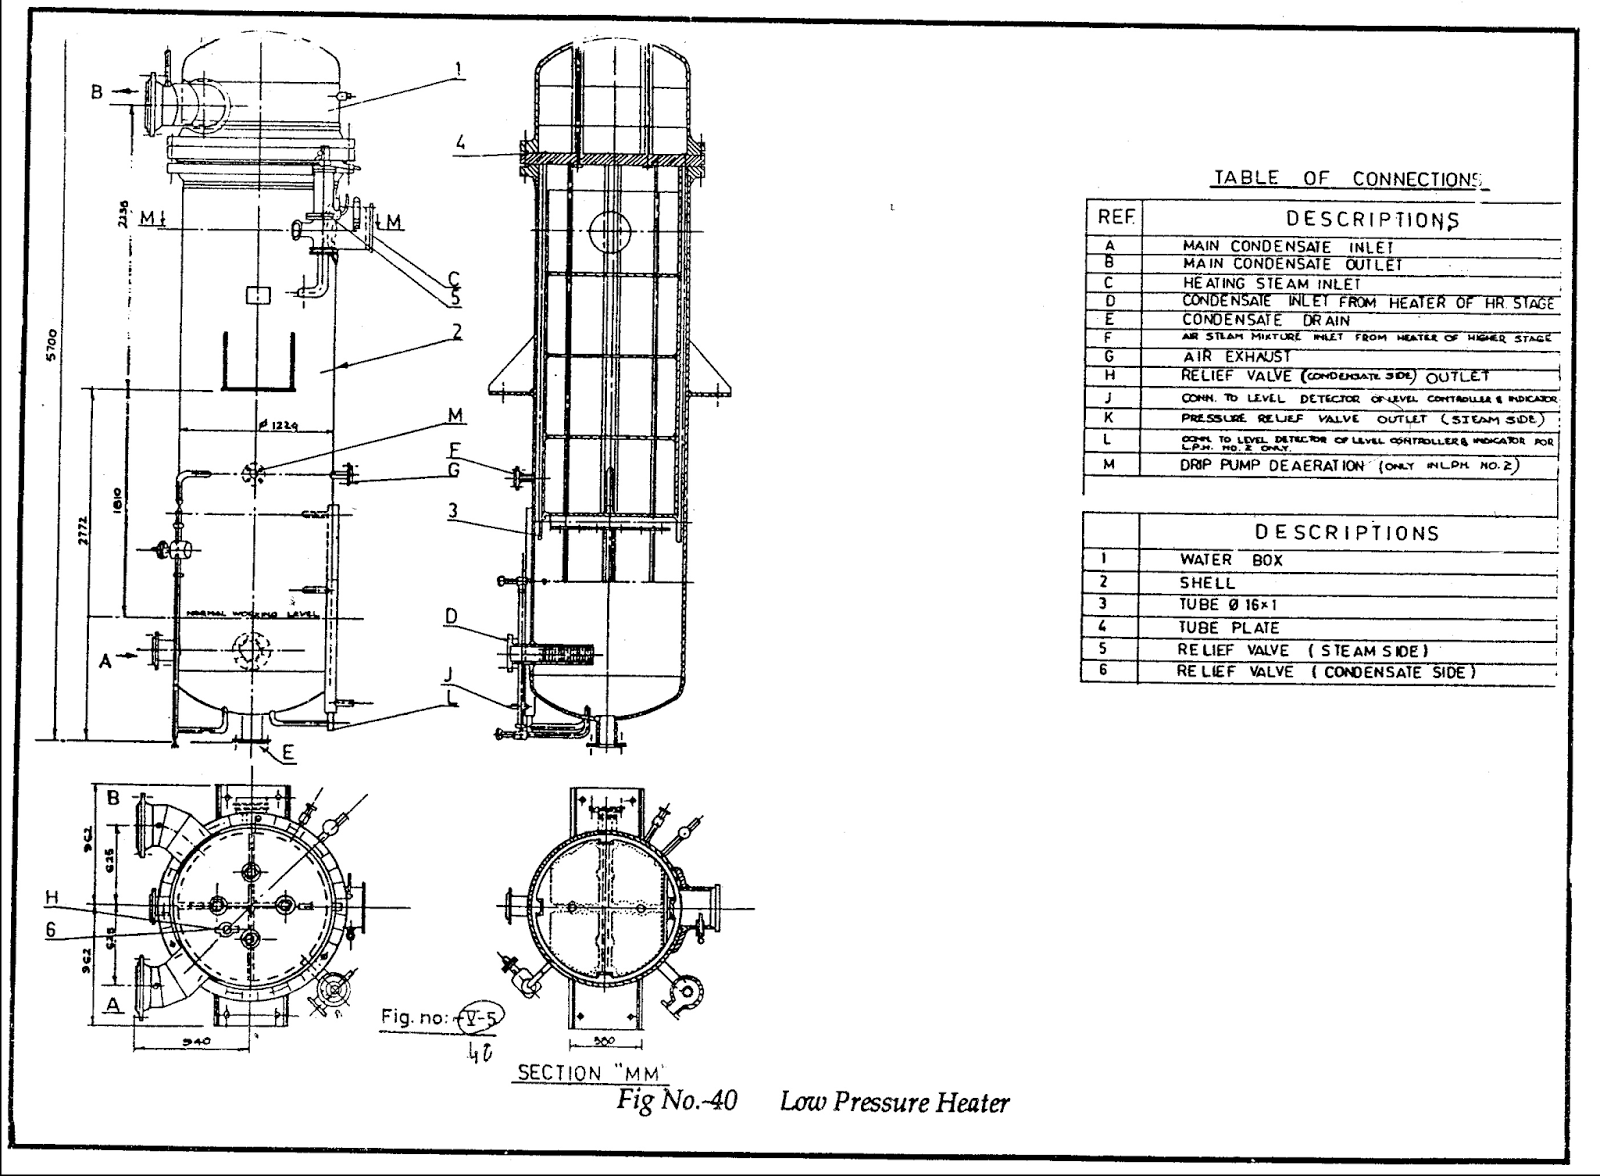 Hp Lp By Pass System All About Power Plant Dry Steam Diagram Heating The Condensate From Turbine Bleed There Are 4 Low Pressure Heaters In Which Last Four Extractions Used